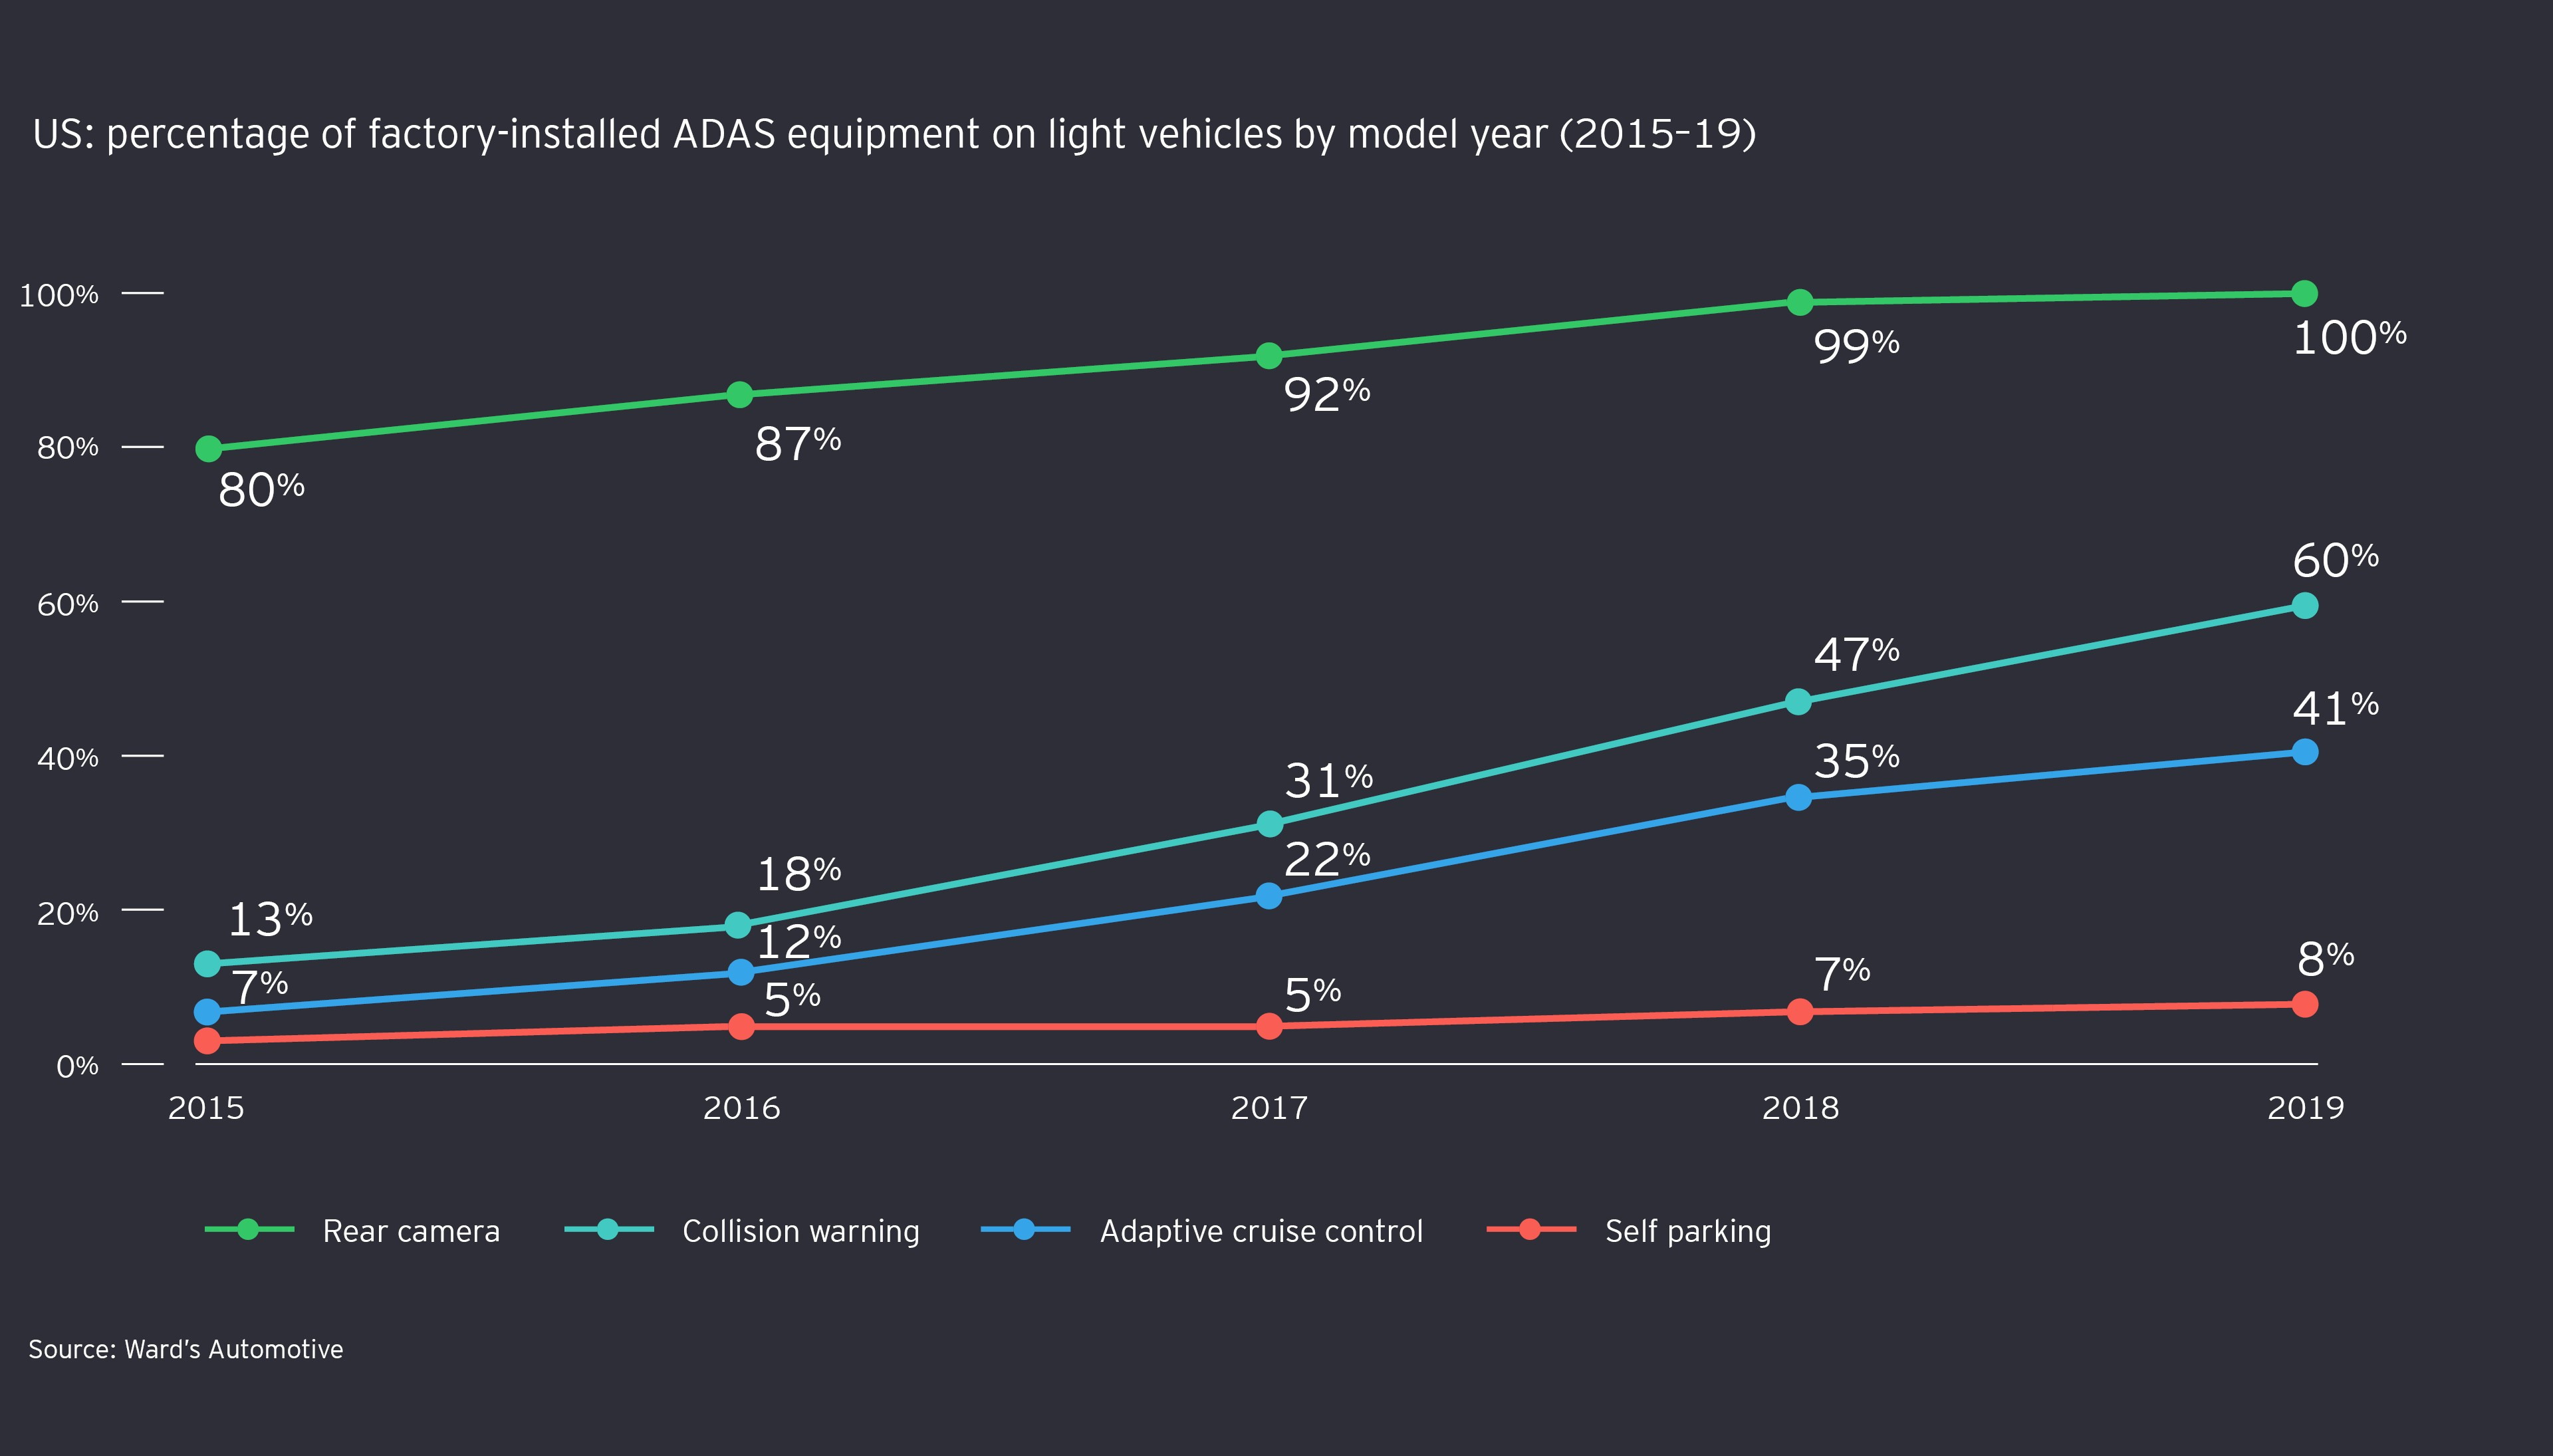 US: percentage of factory-installed ADAS equipment on light vehicles by model year (2015-19)